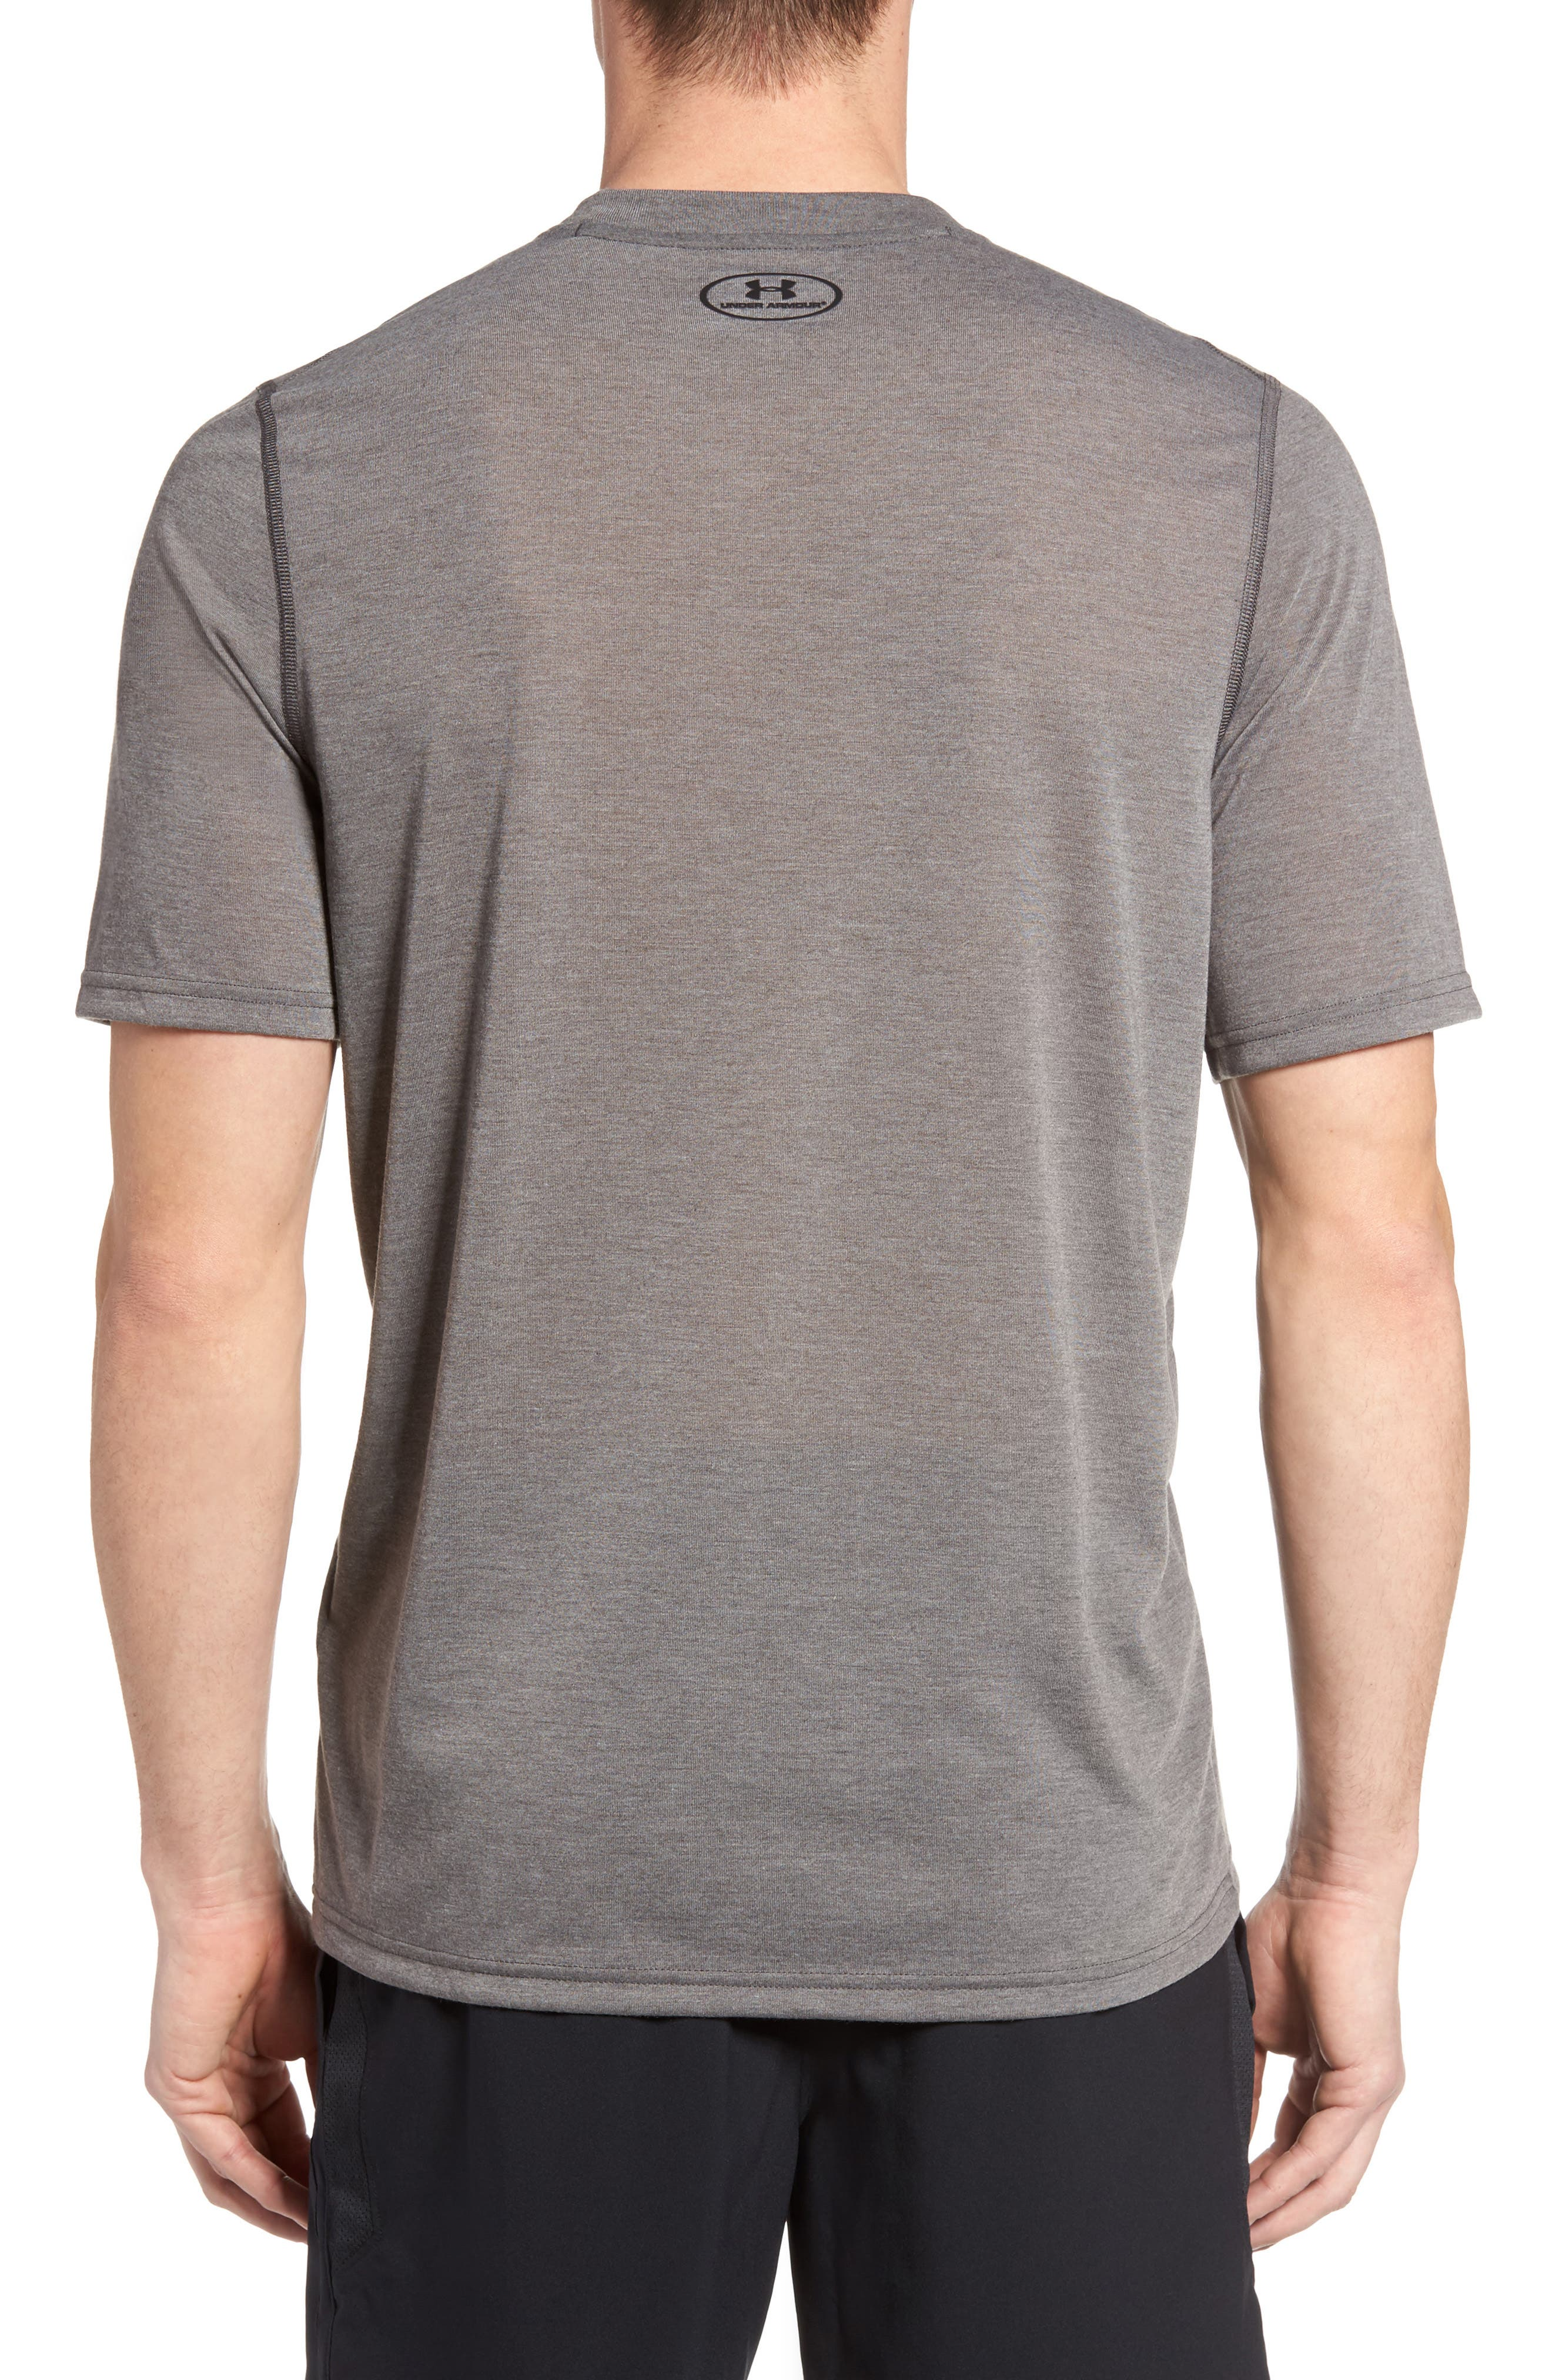 Regular Fit Threadborne T-Shirt,                             Alternate thumbnail 2, color,                             Carbon Heather